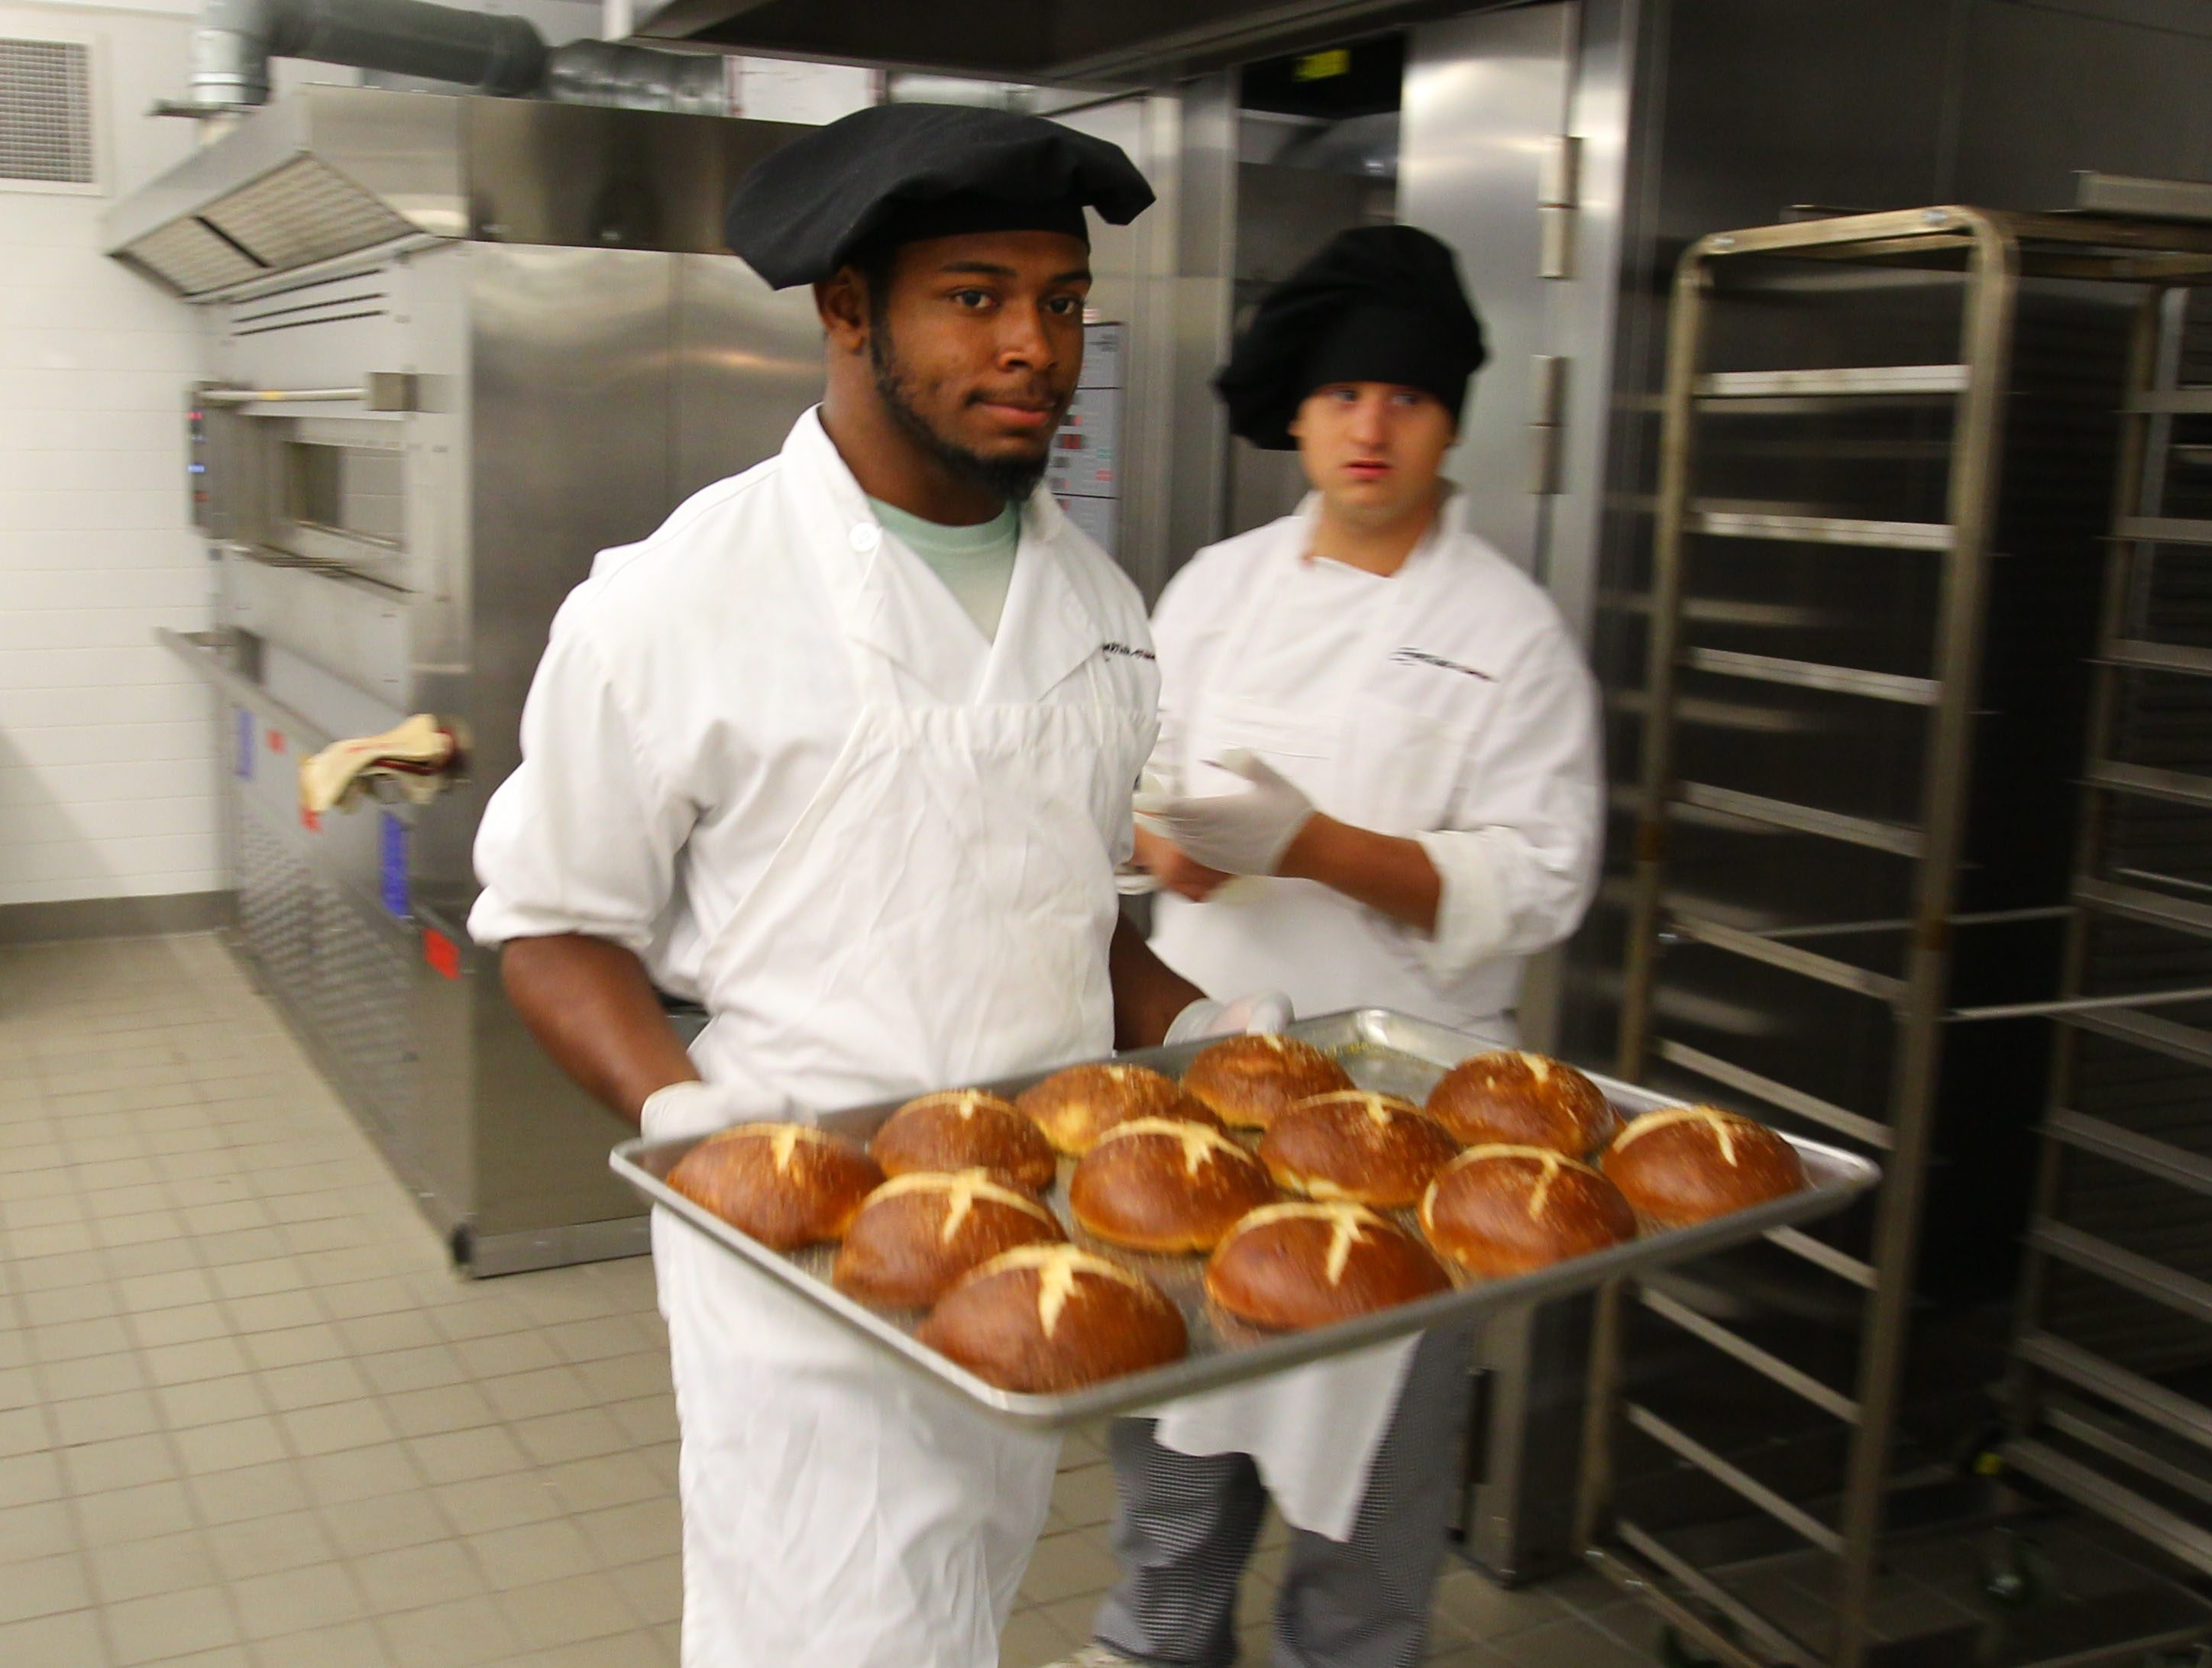 Keyon Hunley carries a tray of pretzel rolls at the Emerson School of Hospitality, the Buffalo school district's premier career education program.